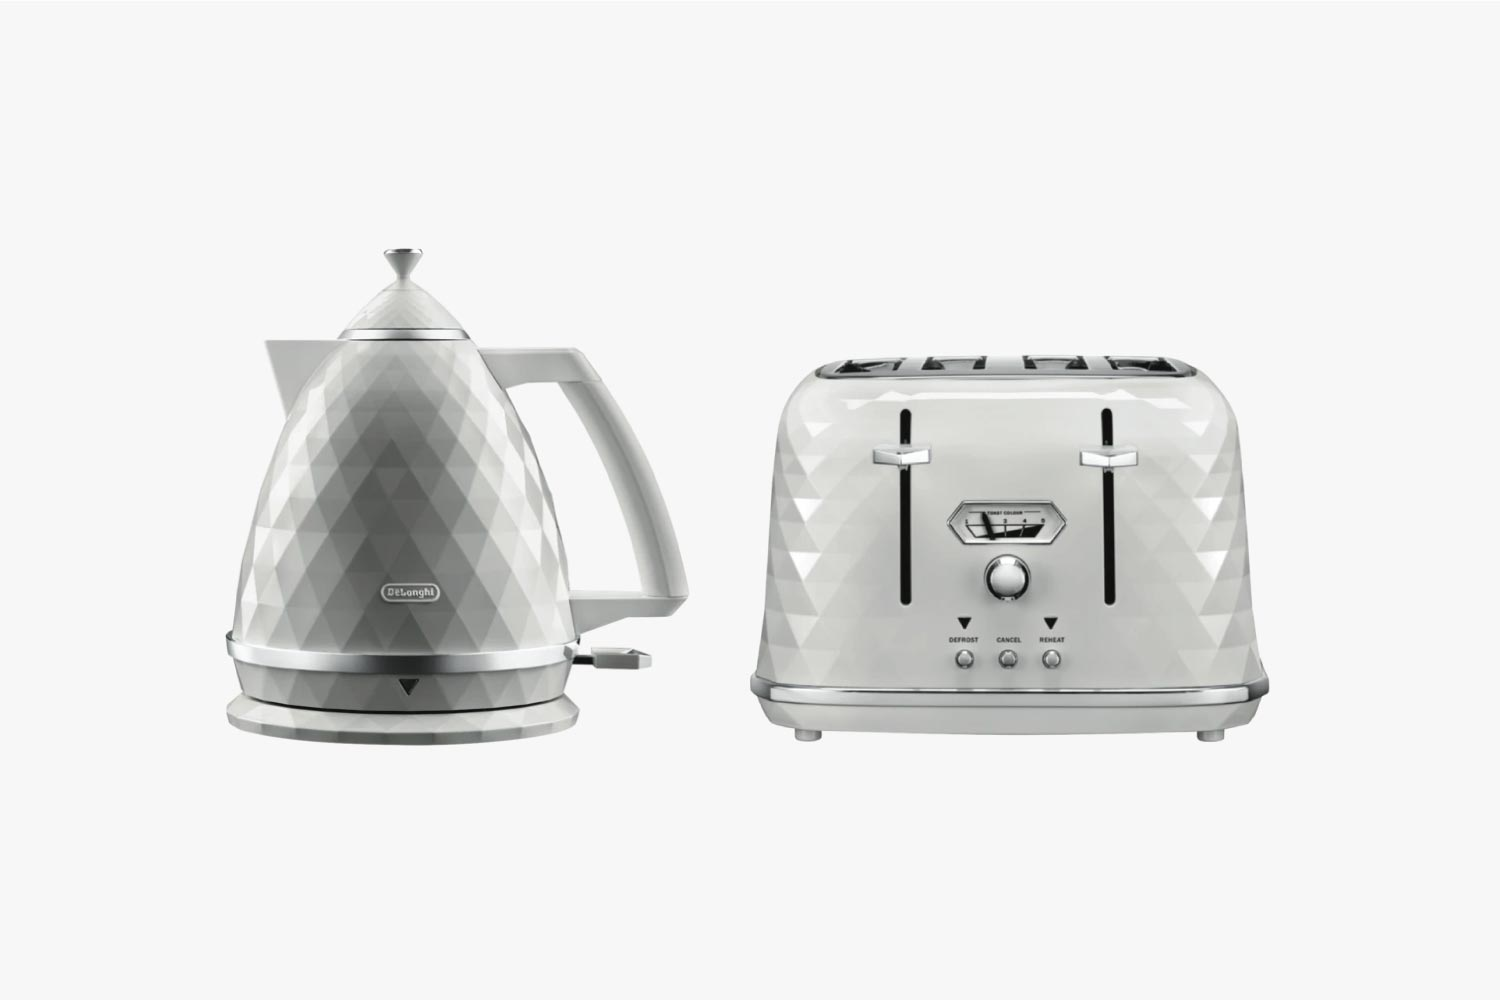 DeLonghi Brilliante Kettle and Toaster